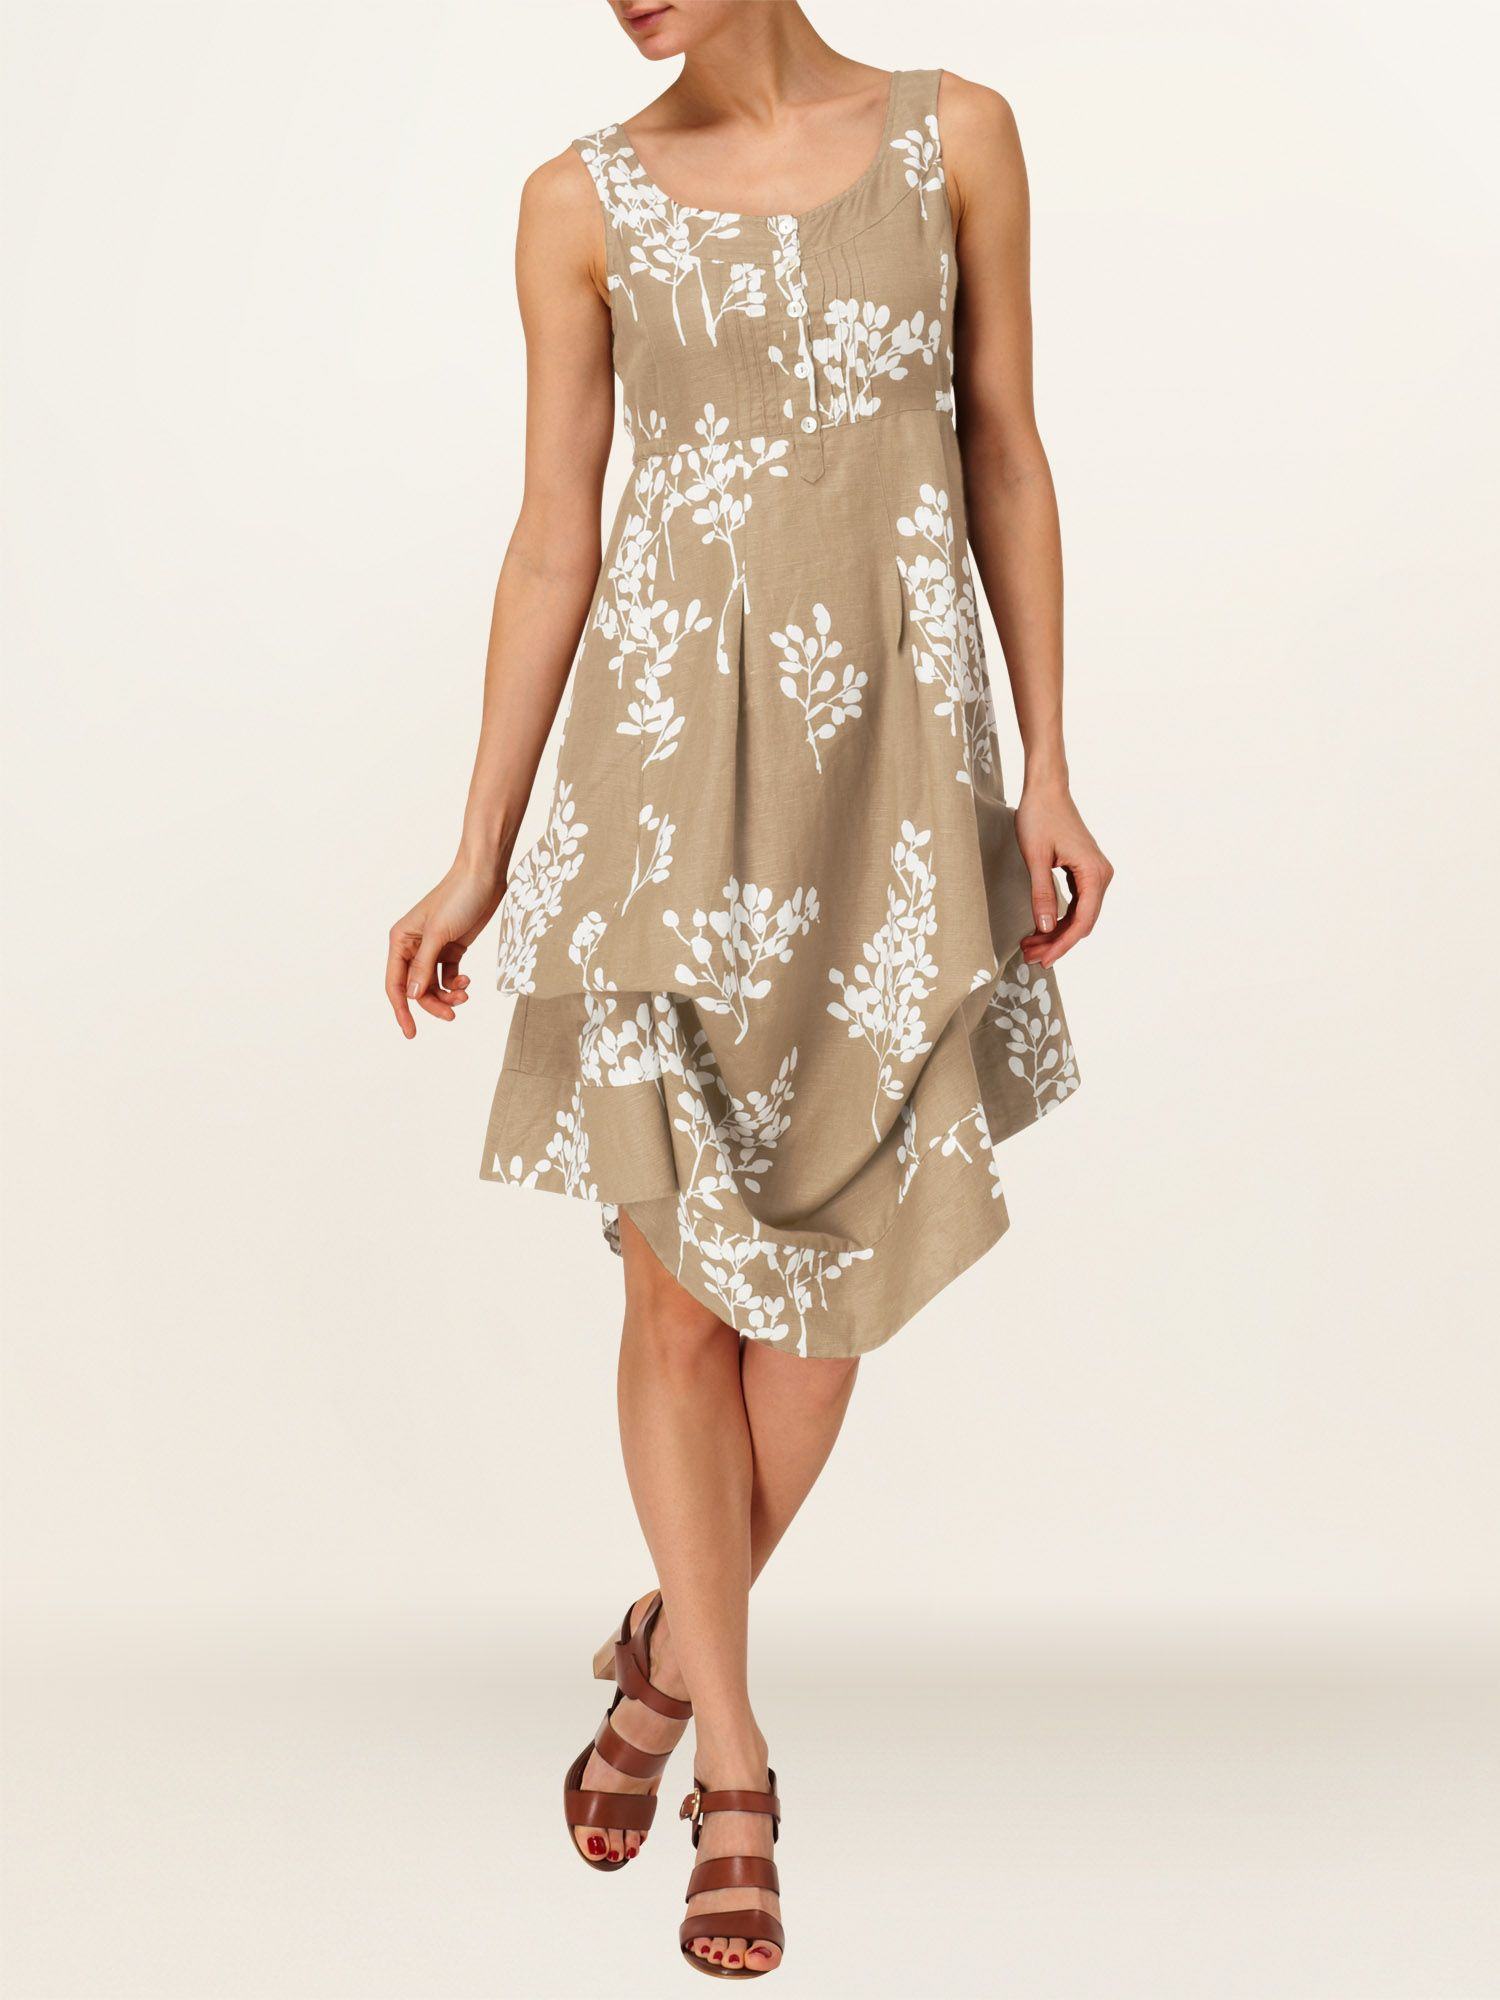 Laurel printed linen hook-up dress